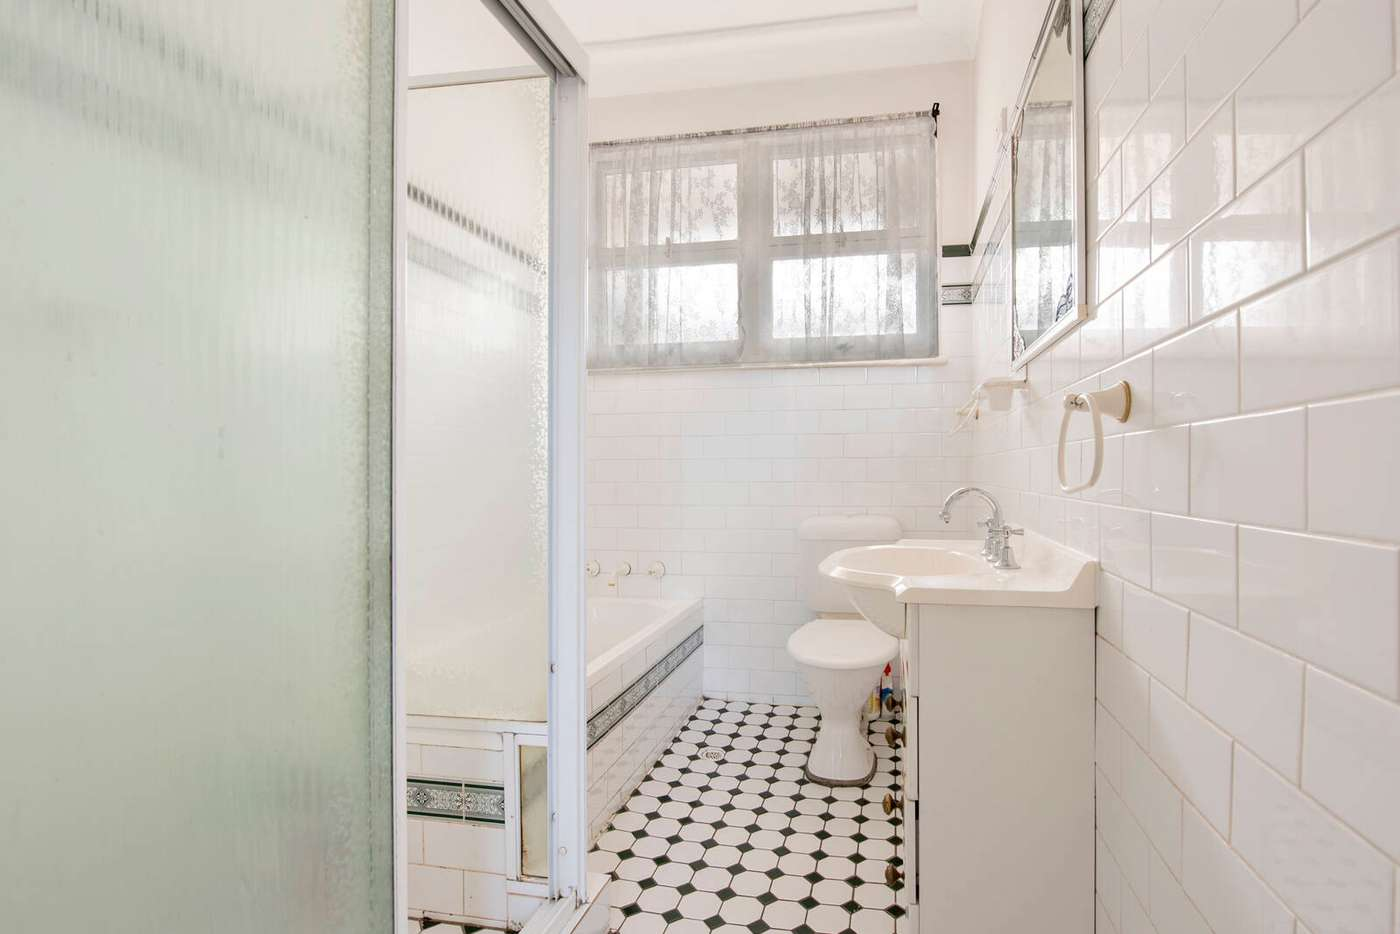 Seventh view of Homely house listing, 11 Attard Avenue, Marayong NSW 2148